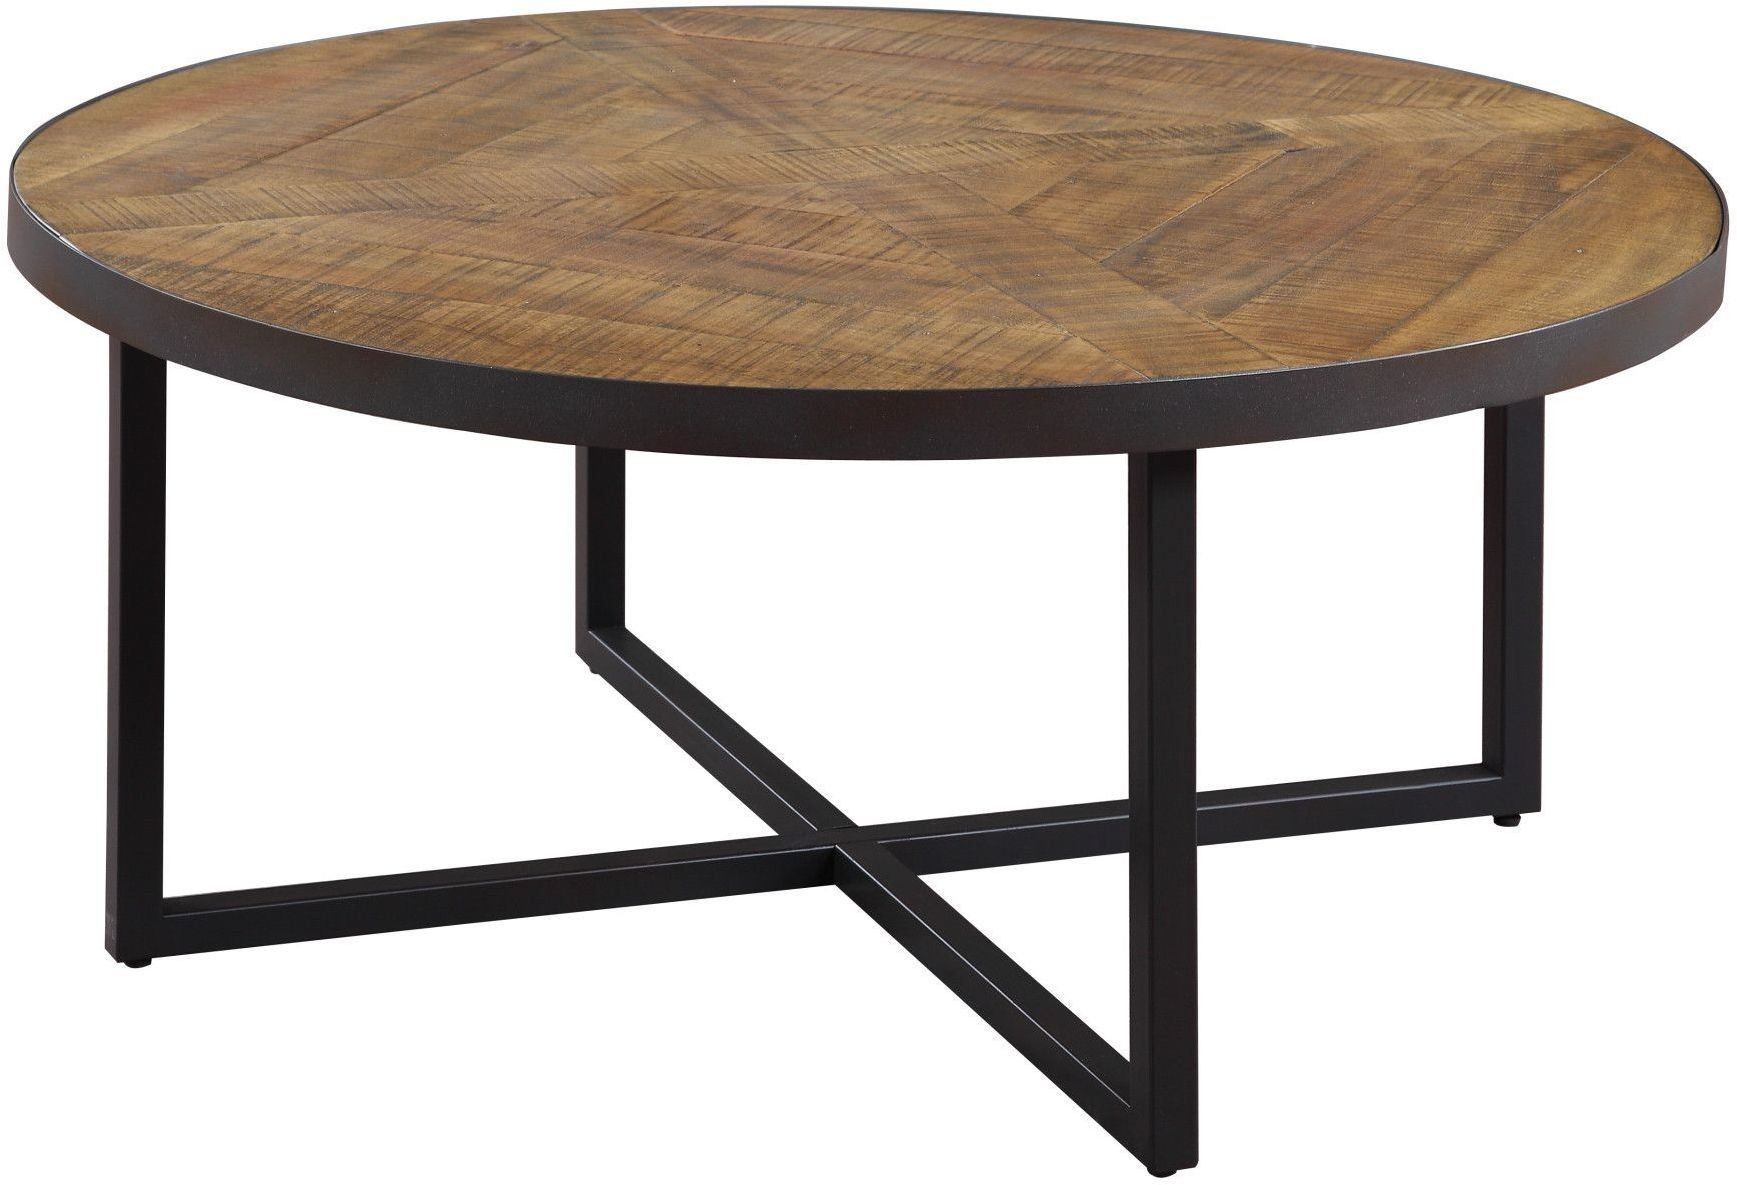 Denton Antique Pine Round Cocktail Table From Emerald Home Coleman Furniture